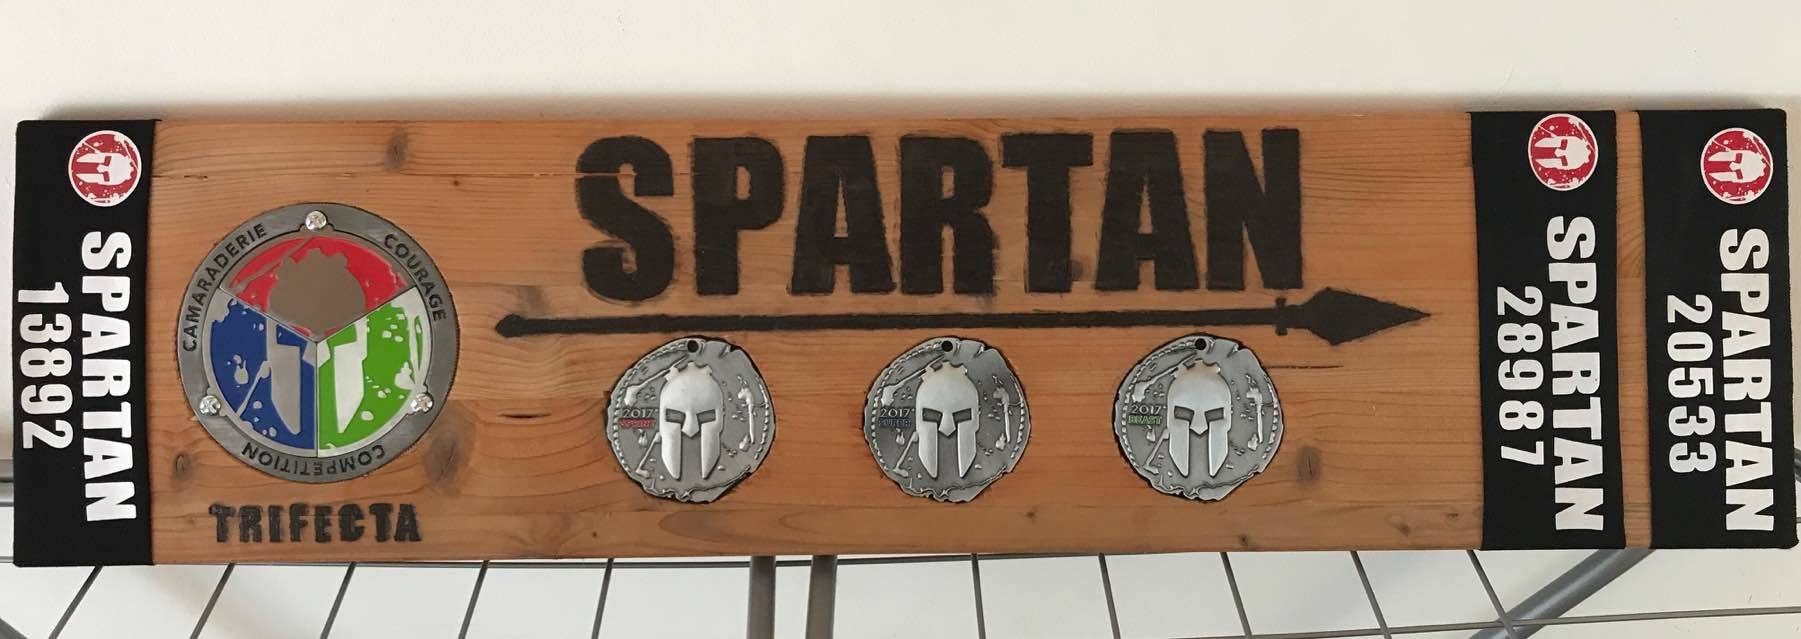 Trifecta Made For Spartan Medals For Spartan Race Trifecta Race Medal Display